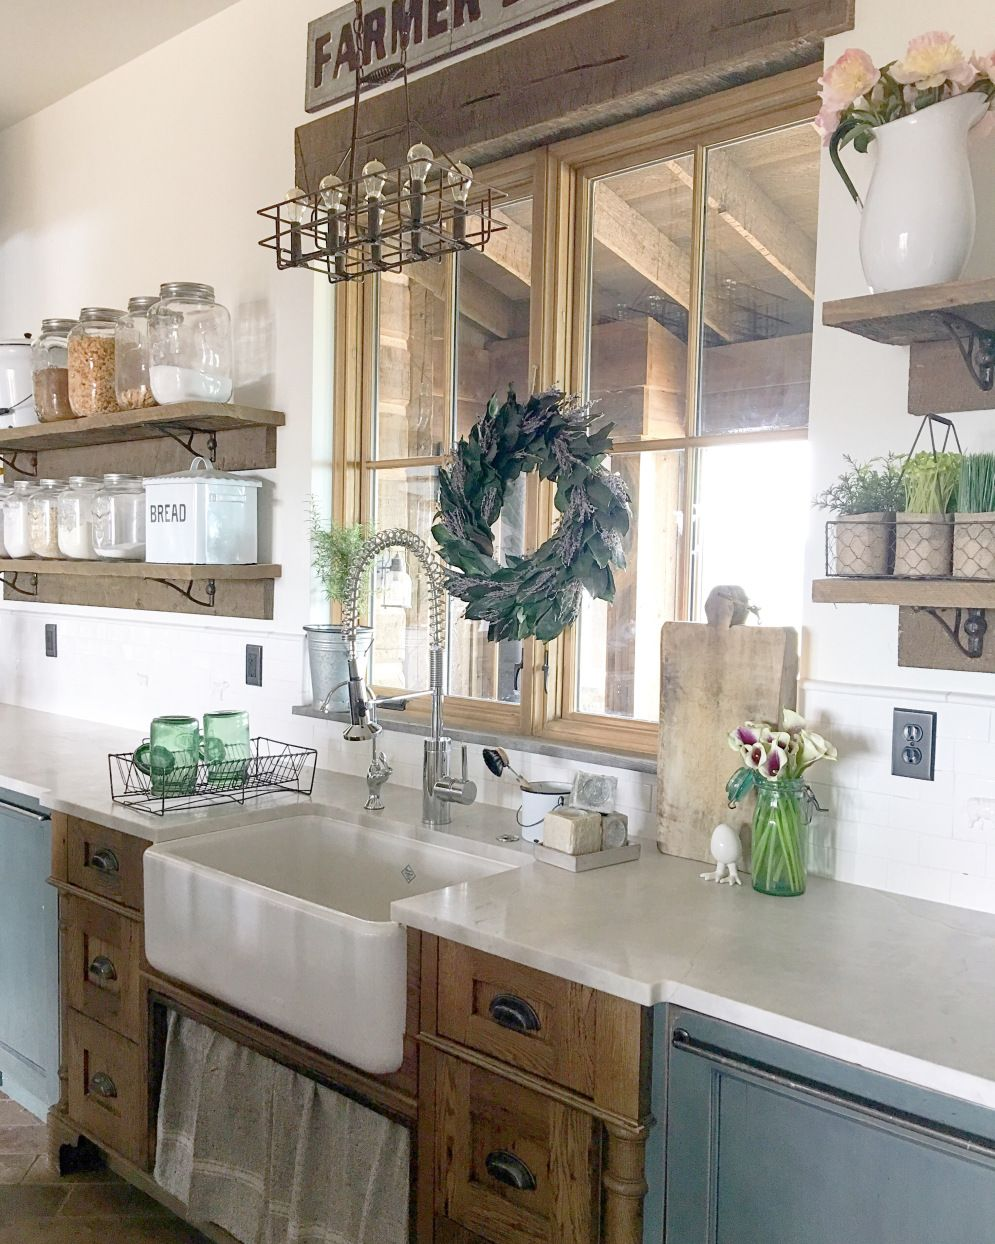 love the surround of the farmhouse sink. great kitchen